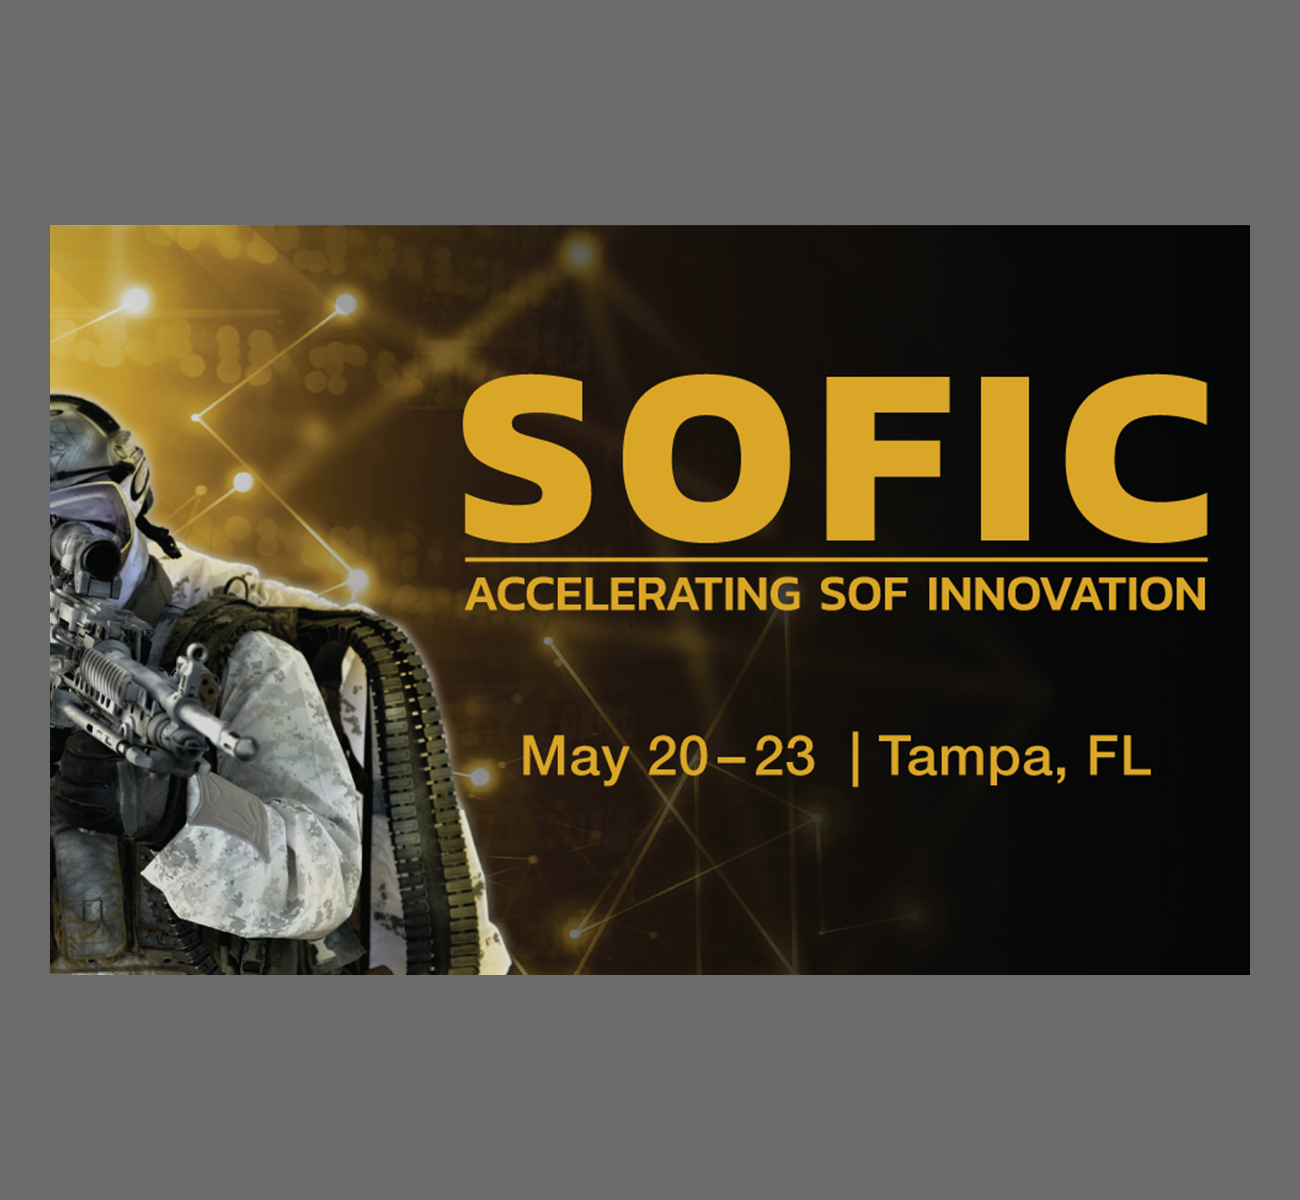 Meet the Octopus ISR Systems team at SOFIC 2019, Tampa, May 20-23